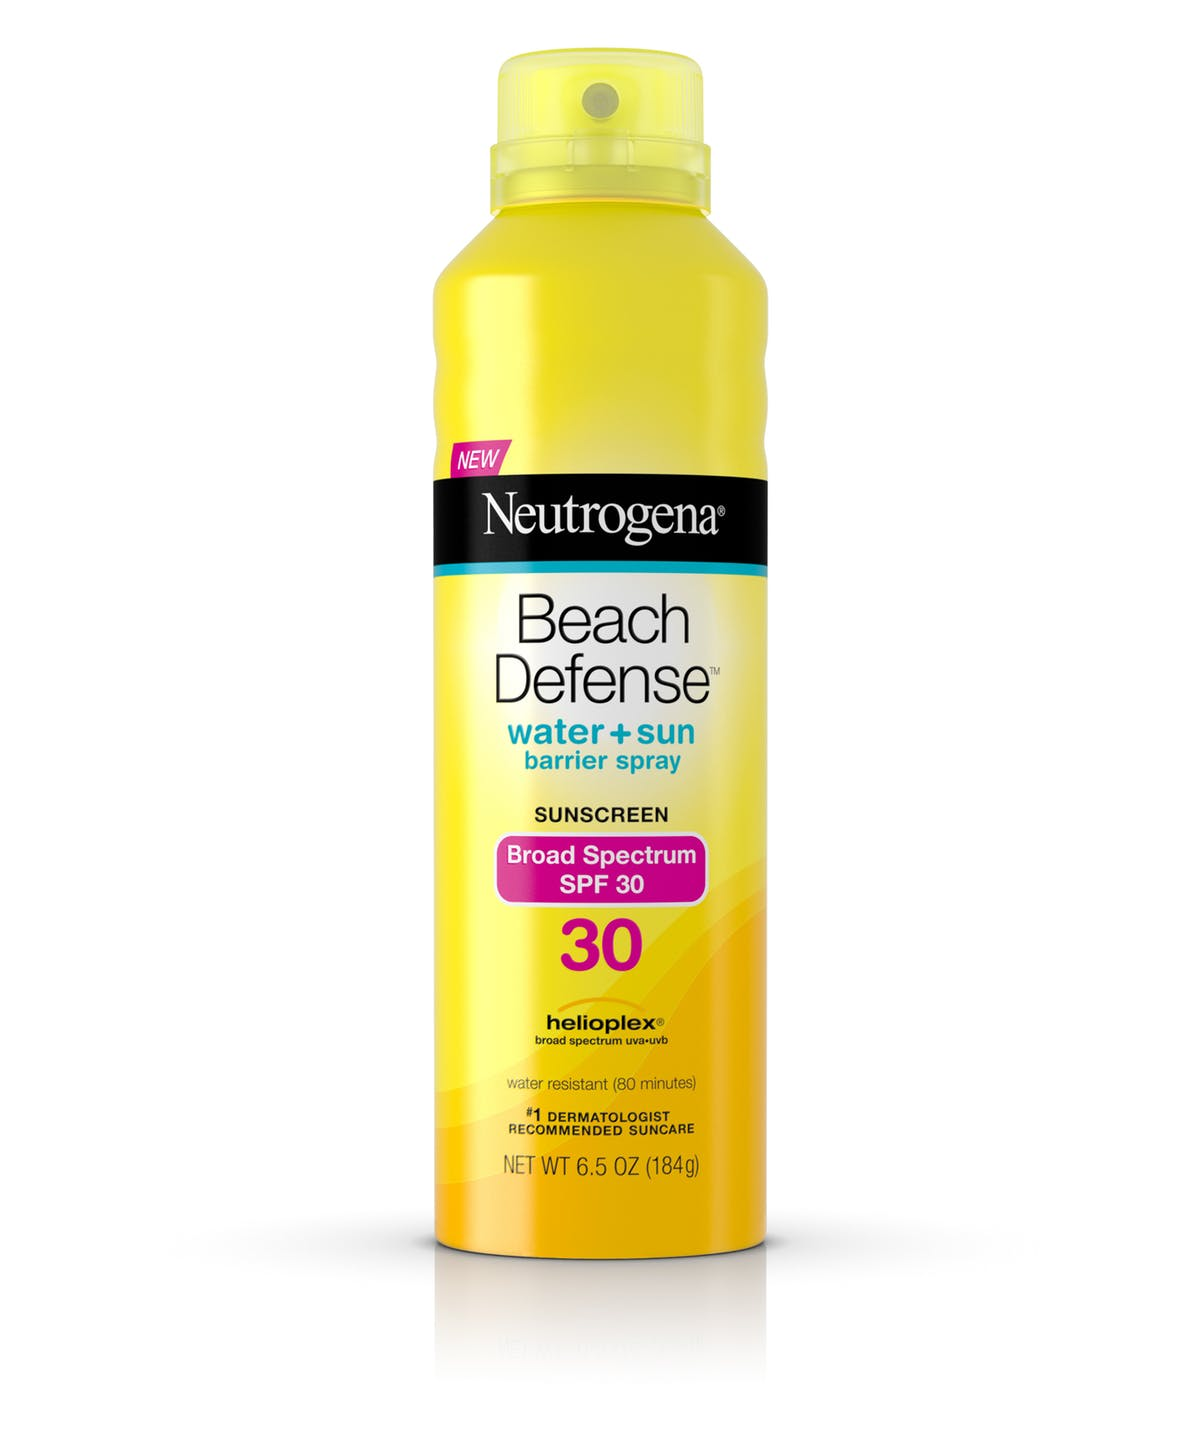 Neutrogena Beach Defense is my go-to sunscreen for myself. I also really like Sun Bum products for my face and for my kids. Sun Bum is labeled for sensitive skin and I find that my kids' sensitive skin and eyes are tolerant of it.